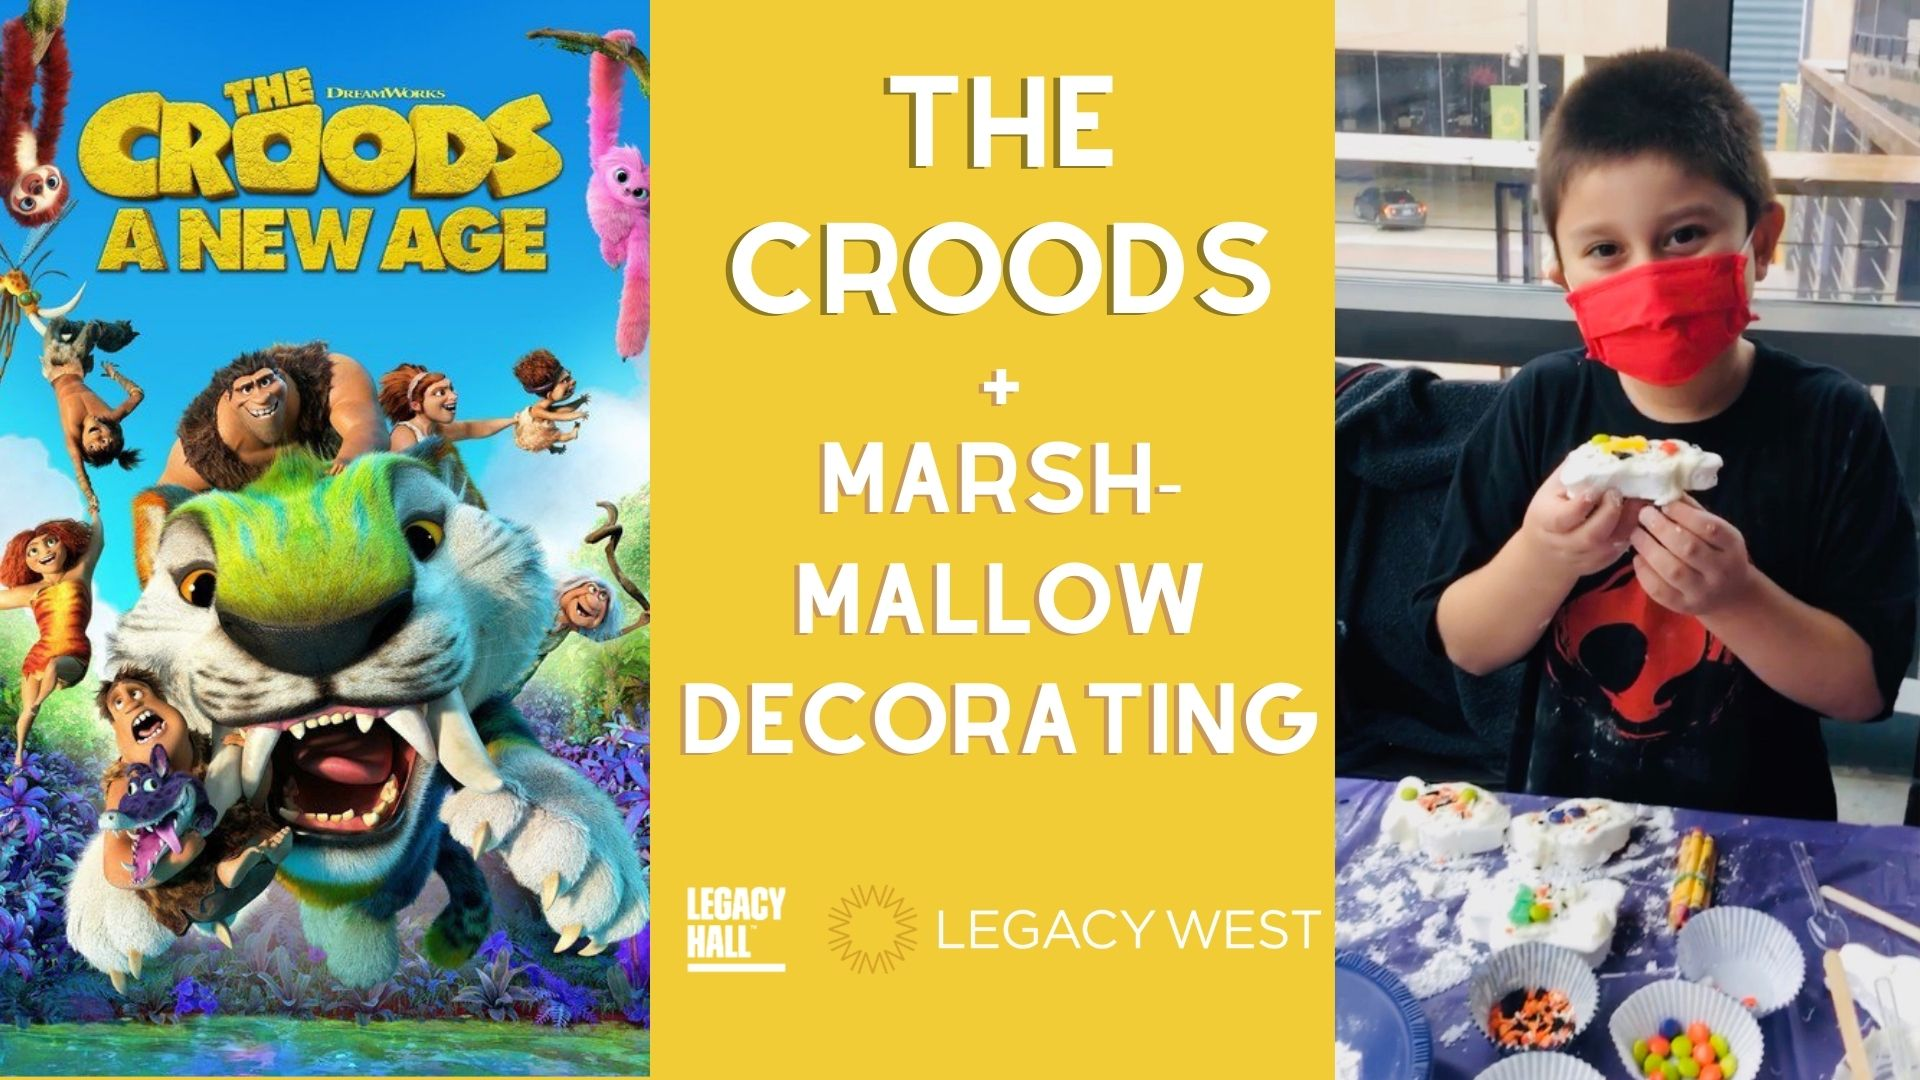 Promo image of The Croods + Marshmallow Decorating